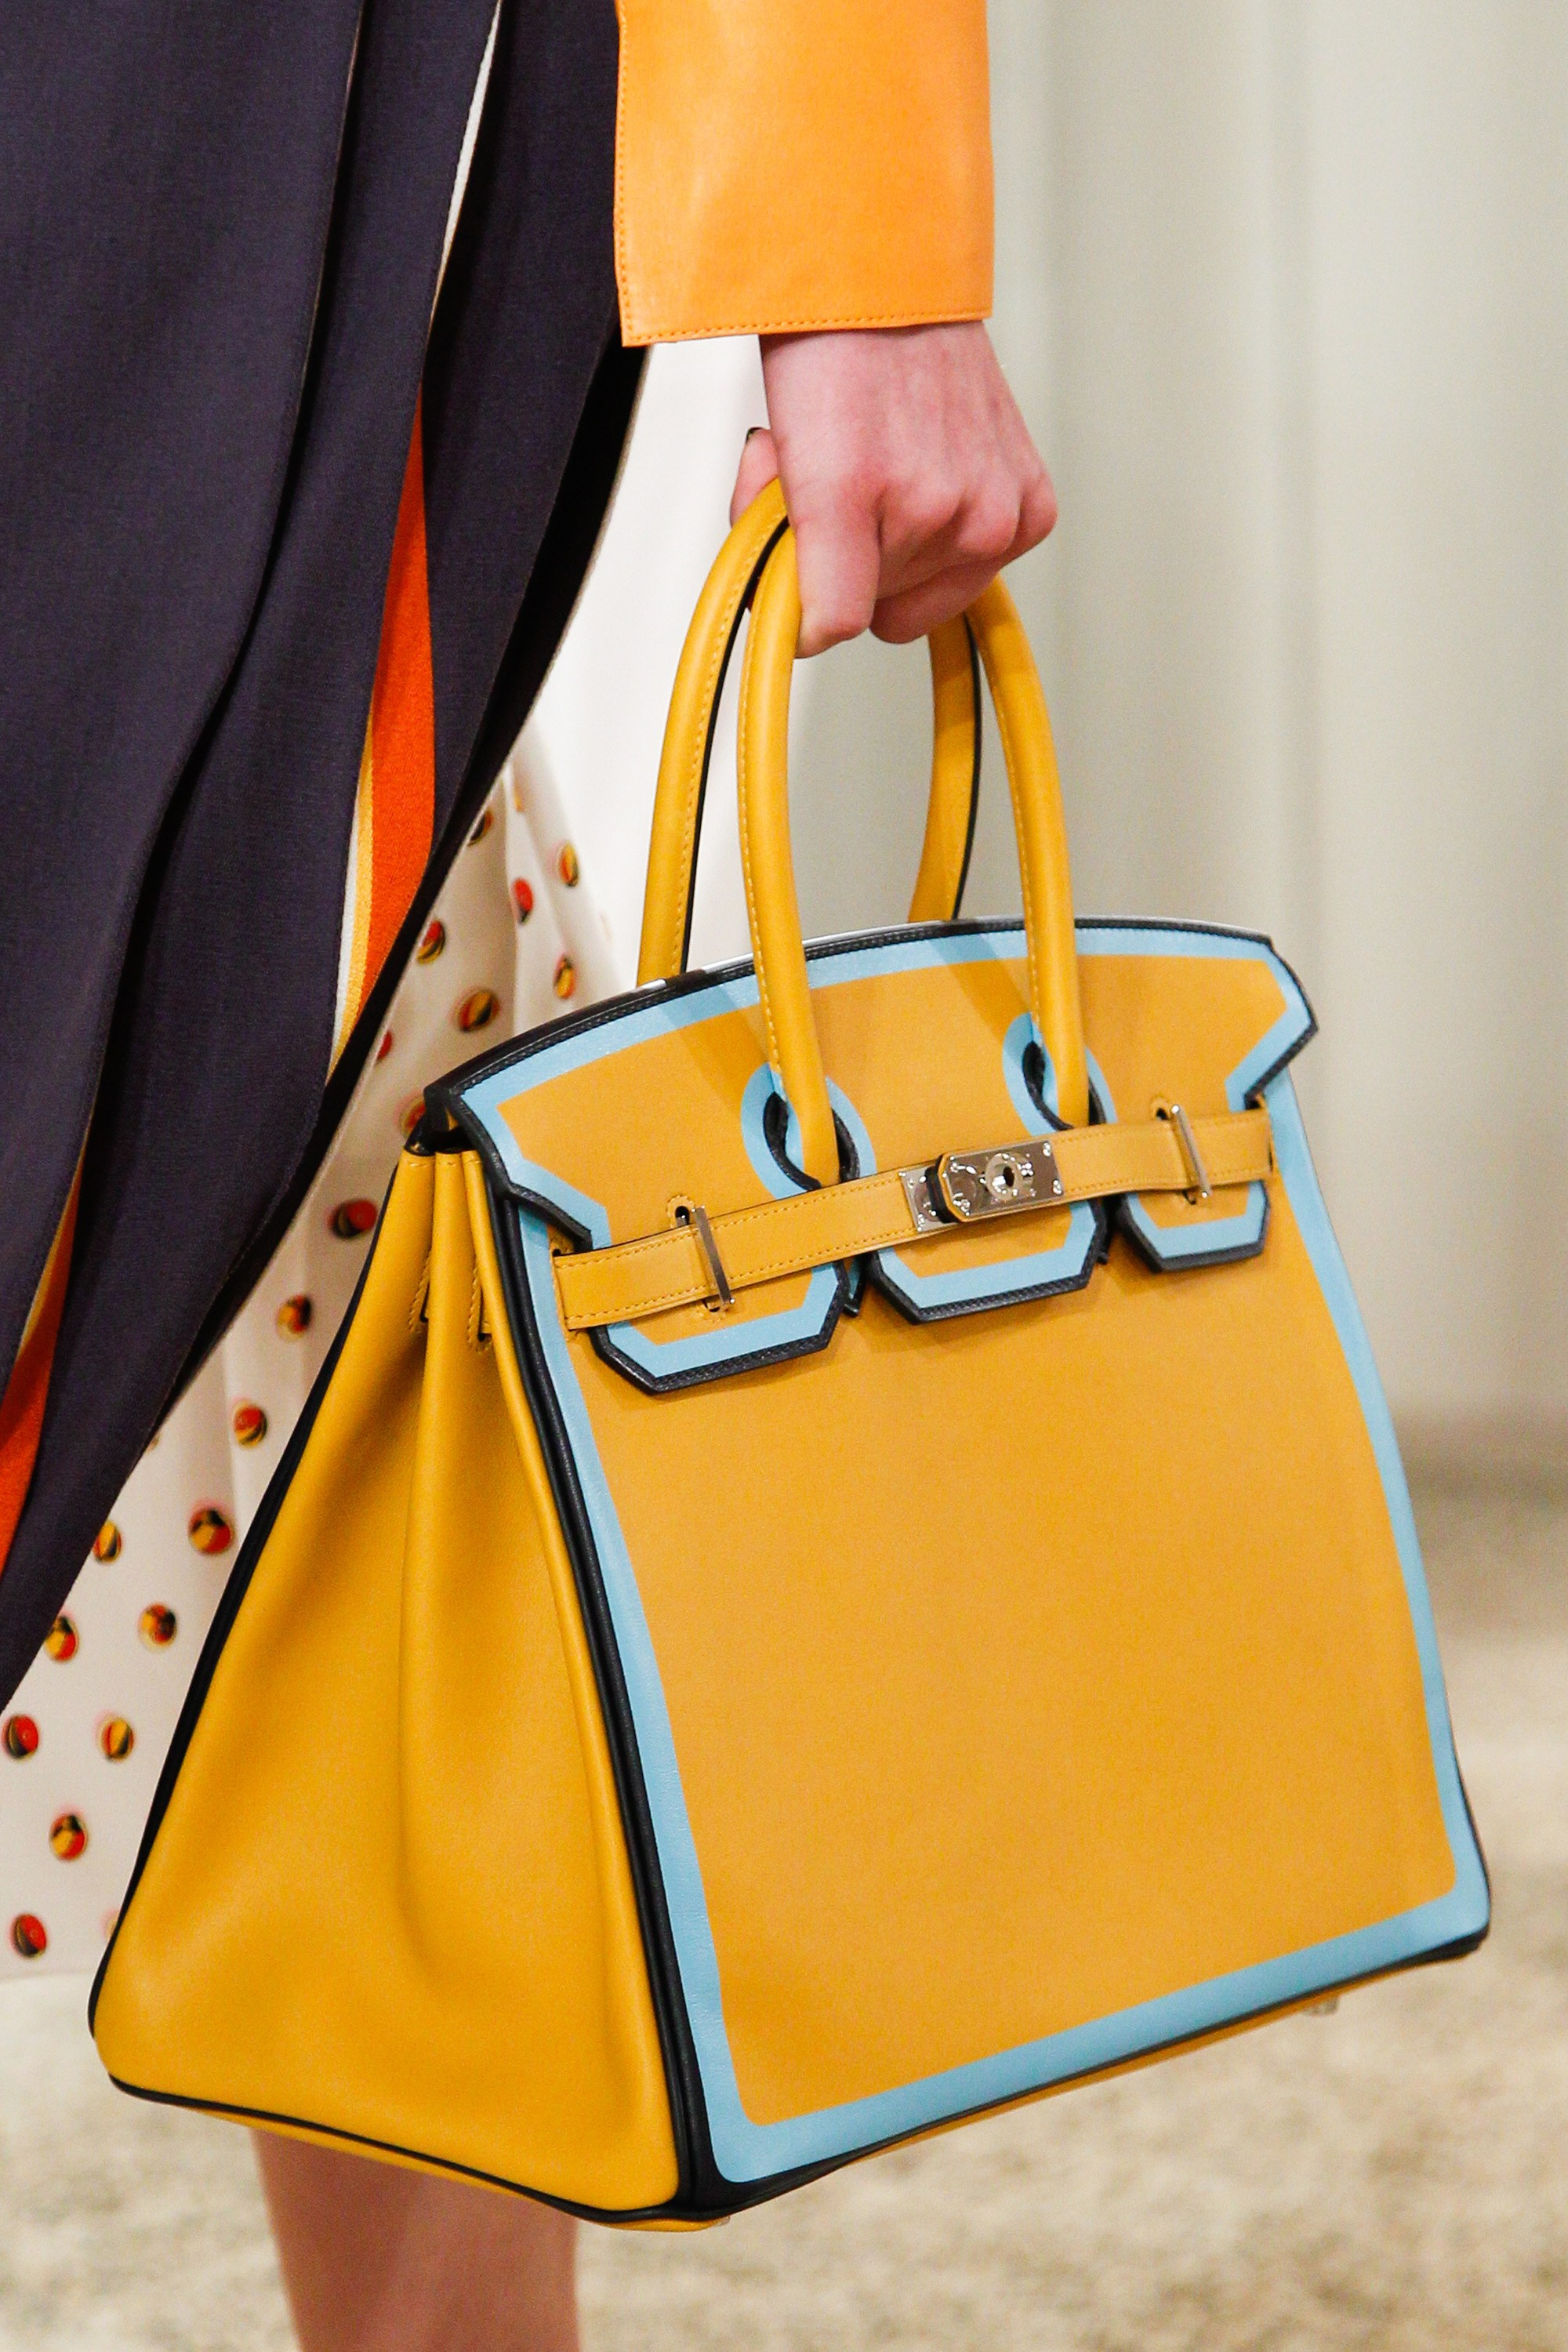 Hermes Yellow With Blue Piping Birkin Bag 2 Resort 2018